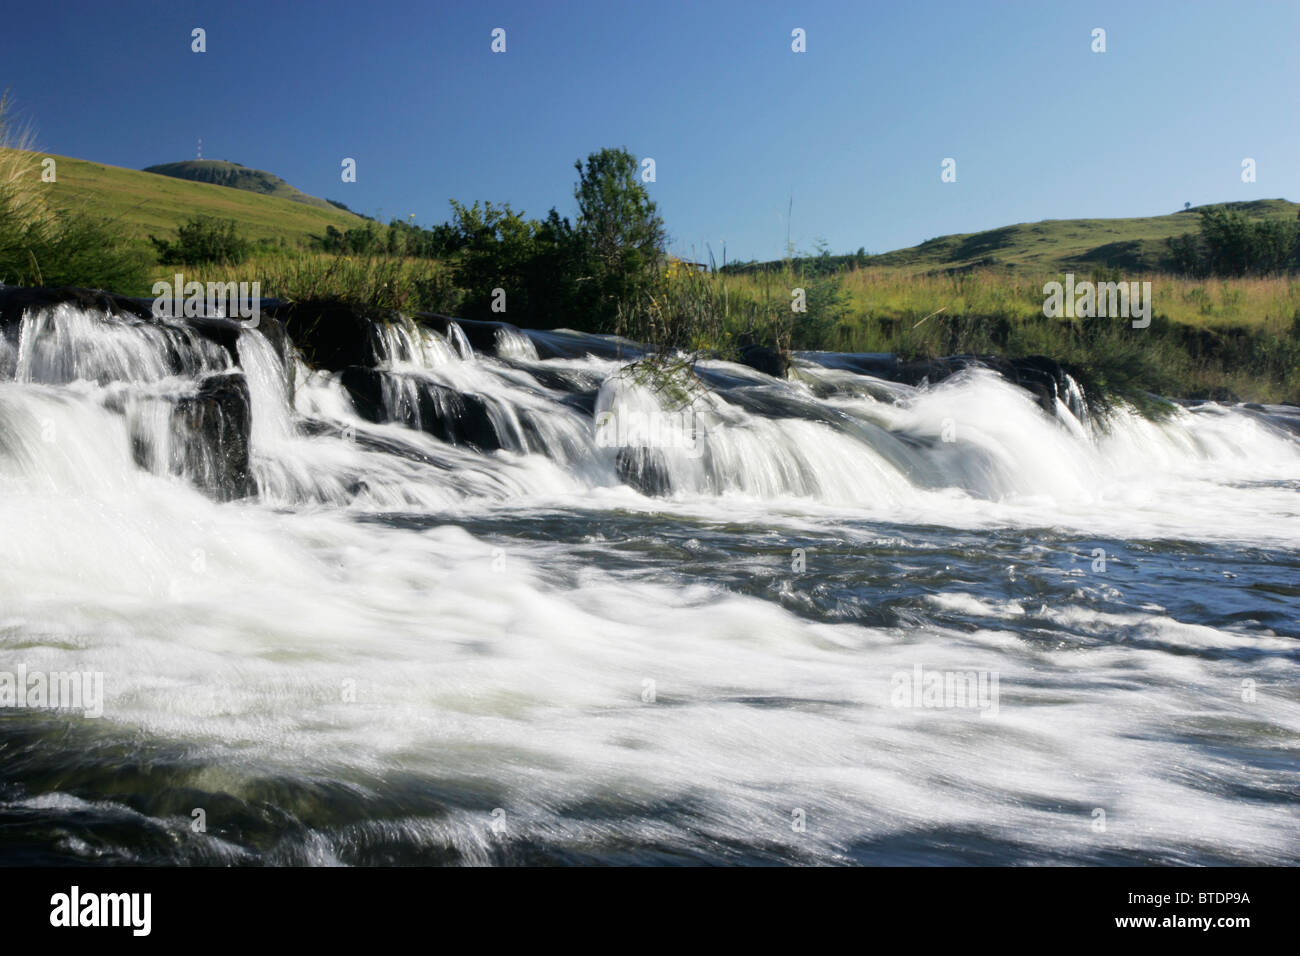 A river flowing swiftly over rocks - Stock Image